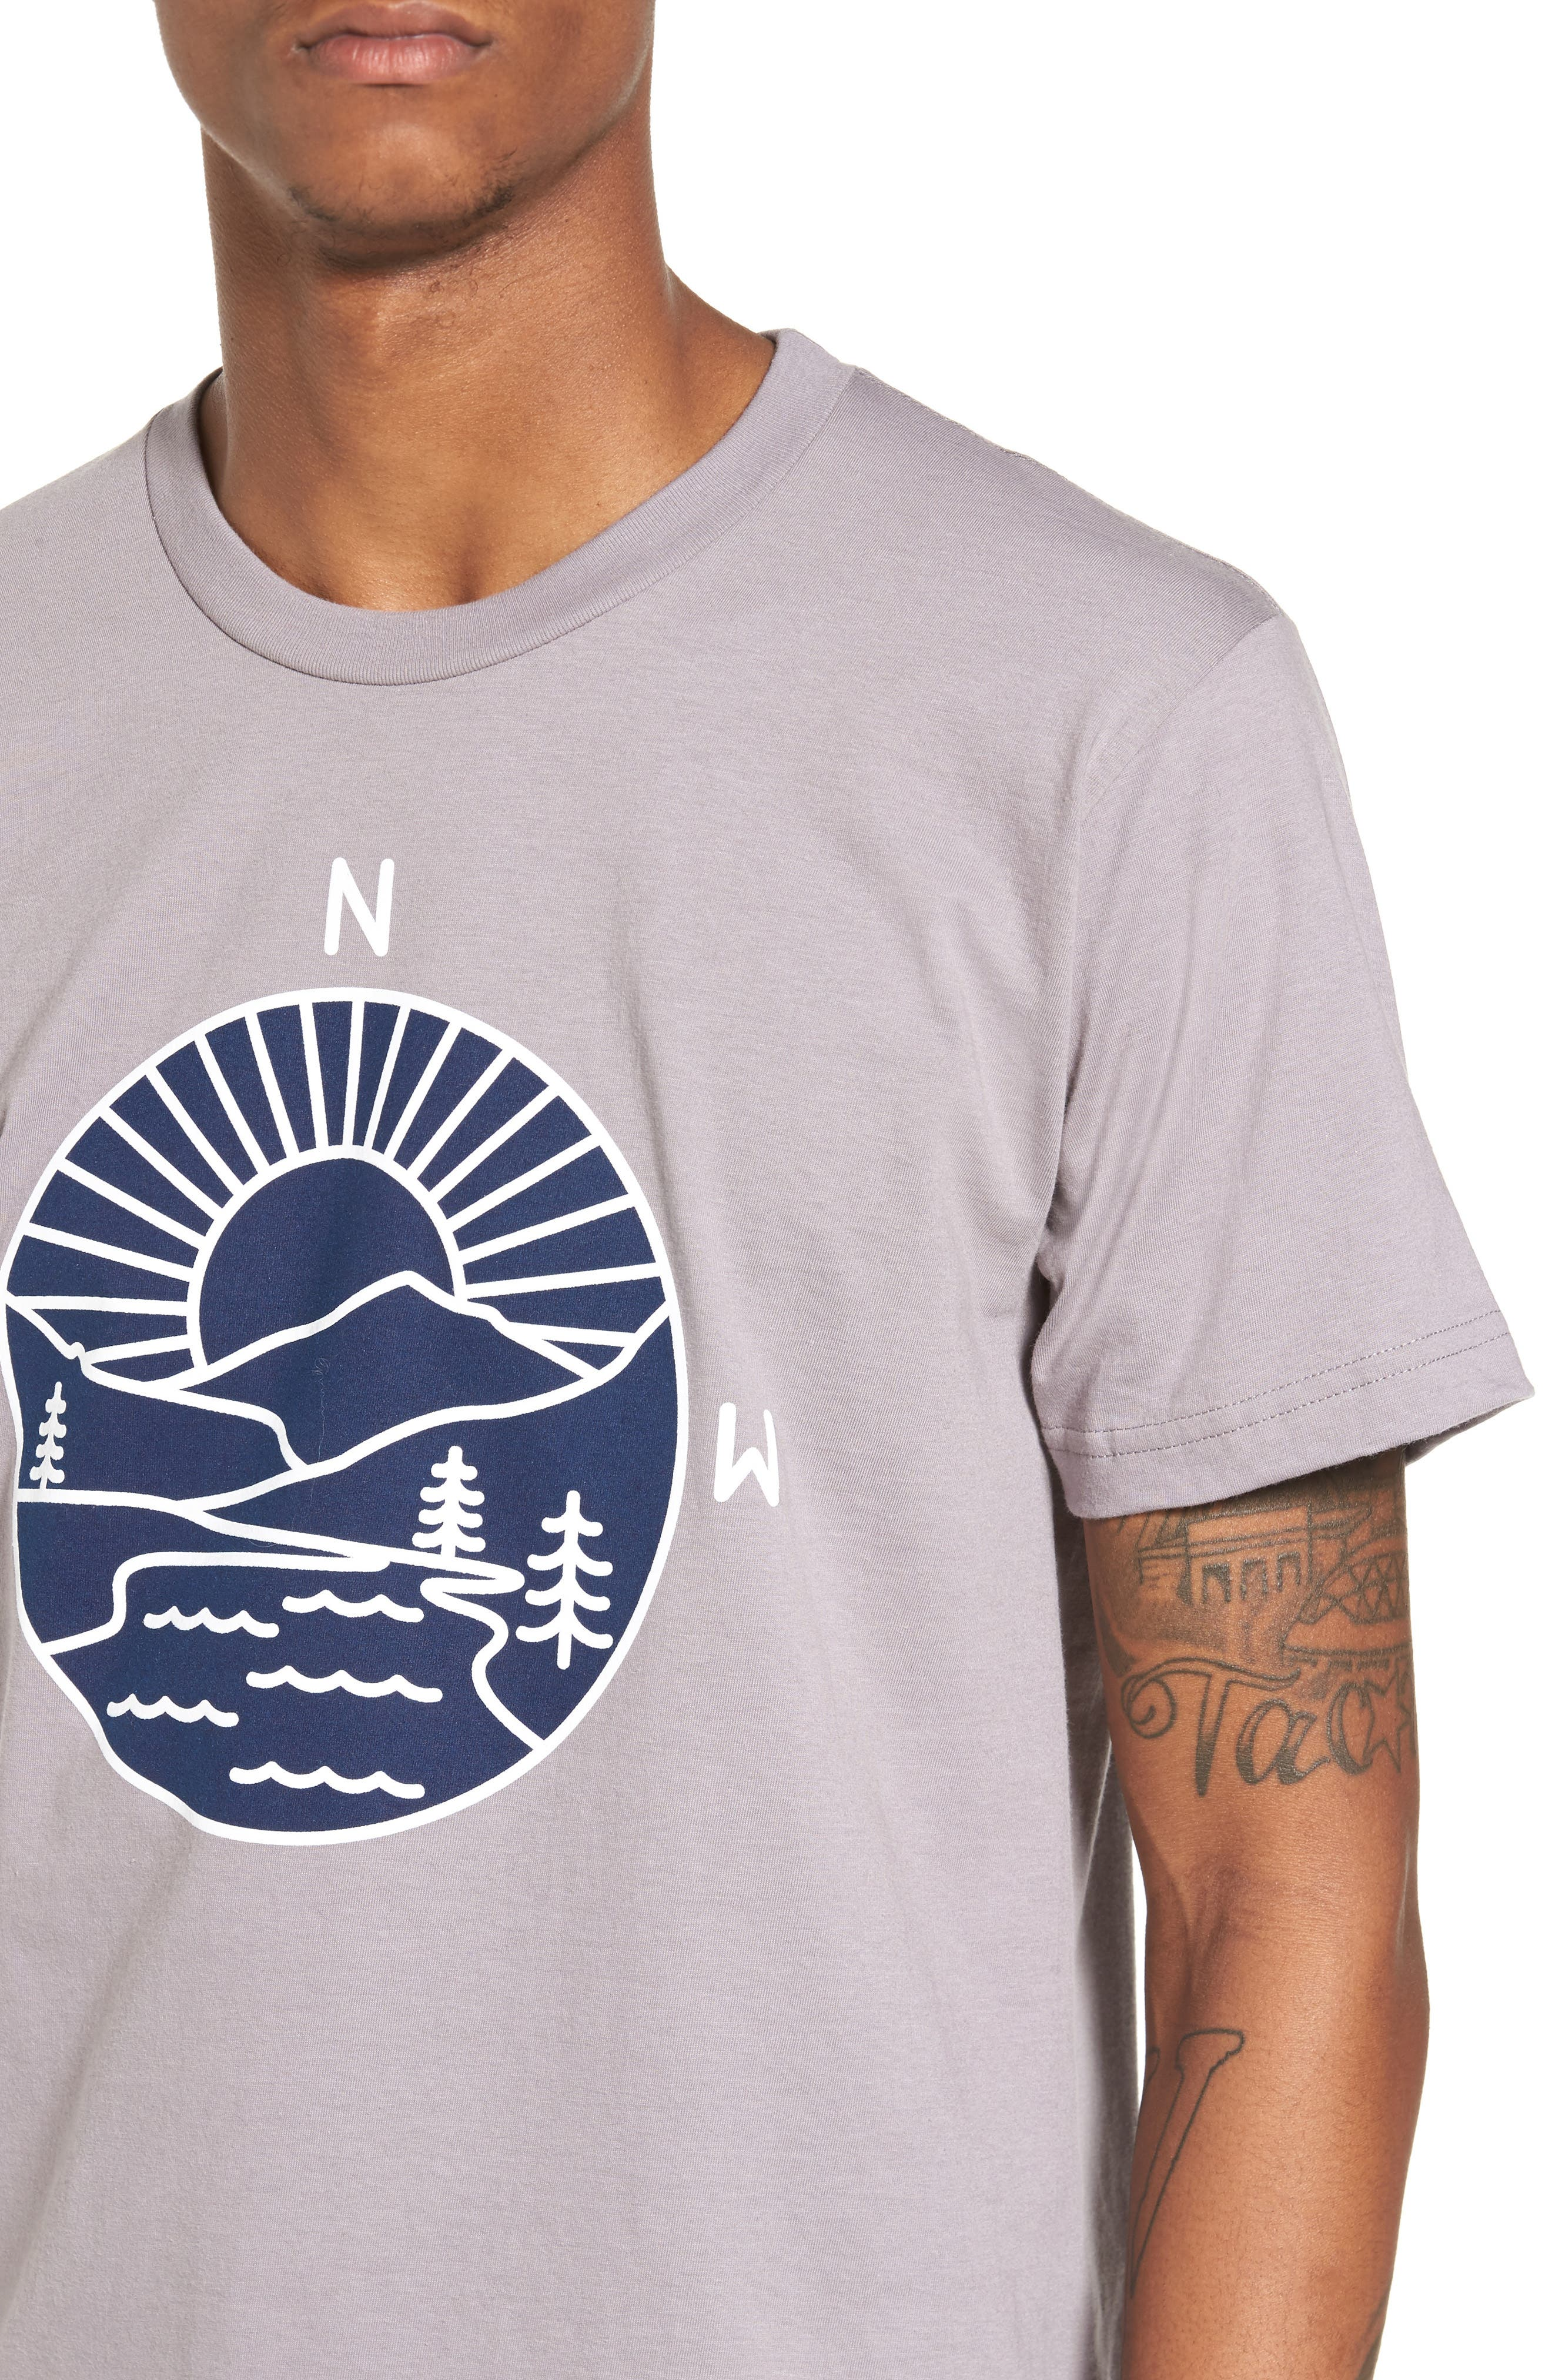 PNW Explorer T-Shirt,                             Alternate thumbnail 4, color,                             020